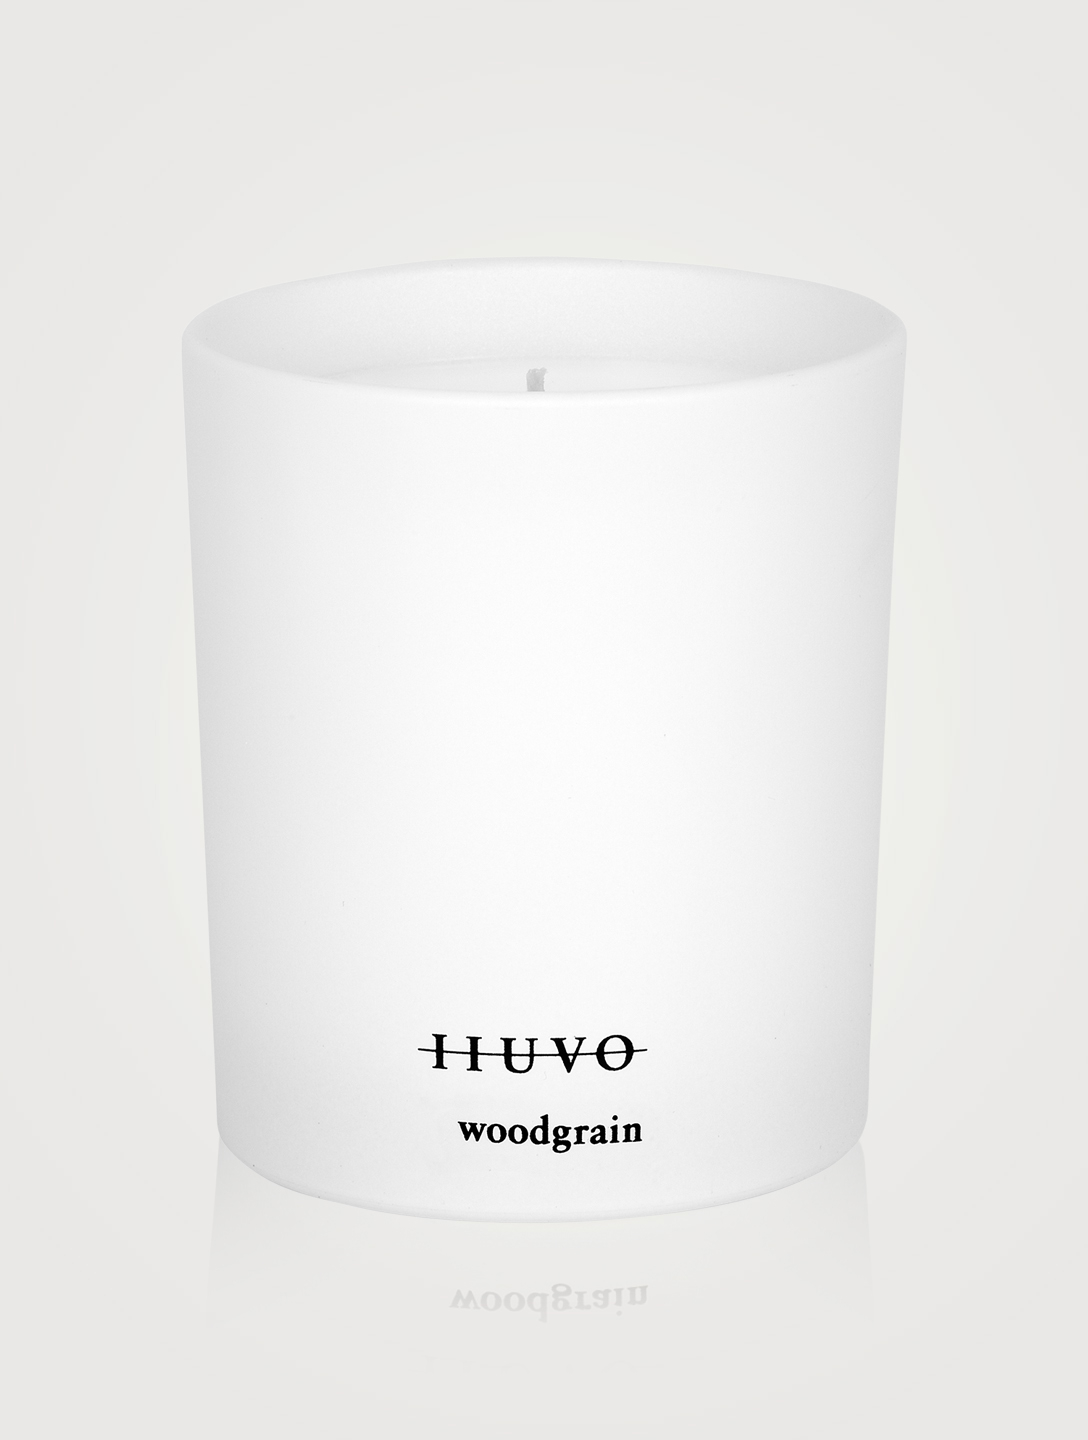 IIUVO Woodgrain Scented Candle Beauty